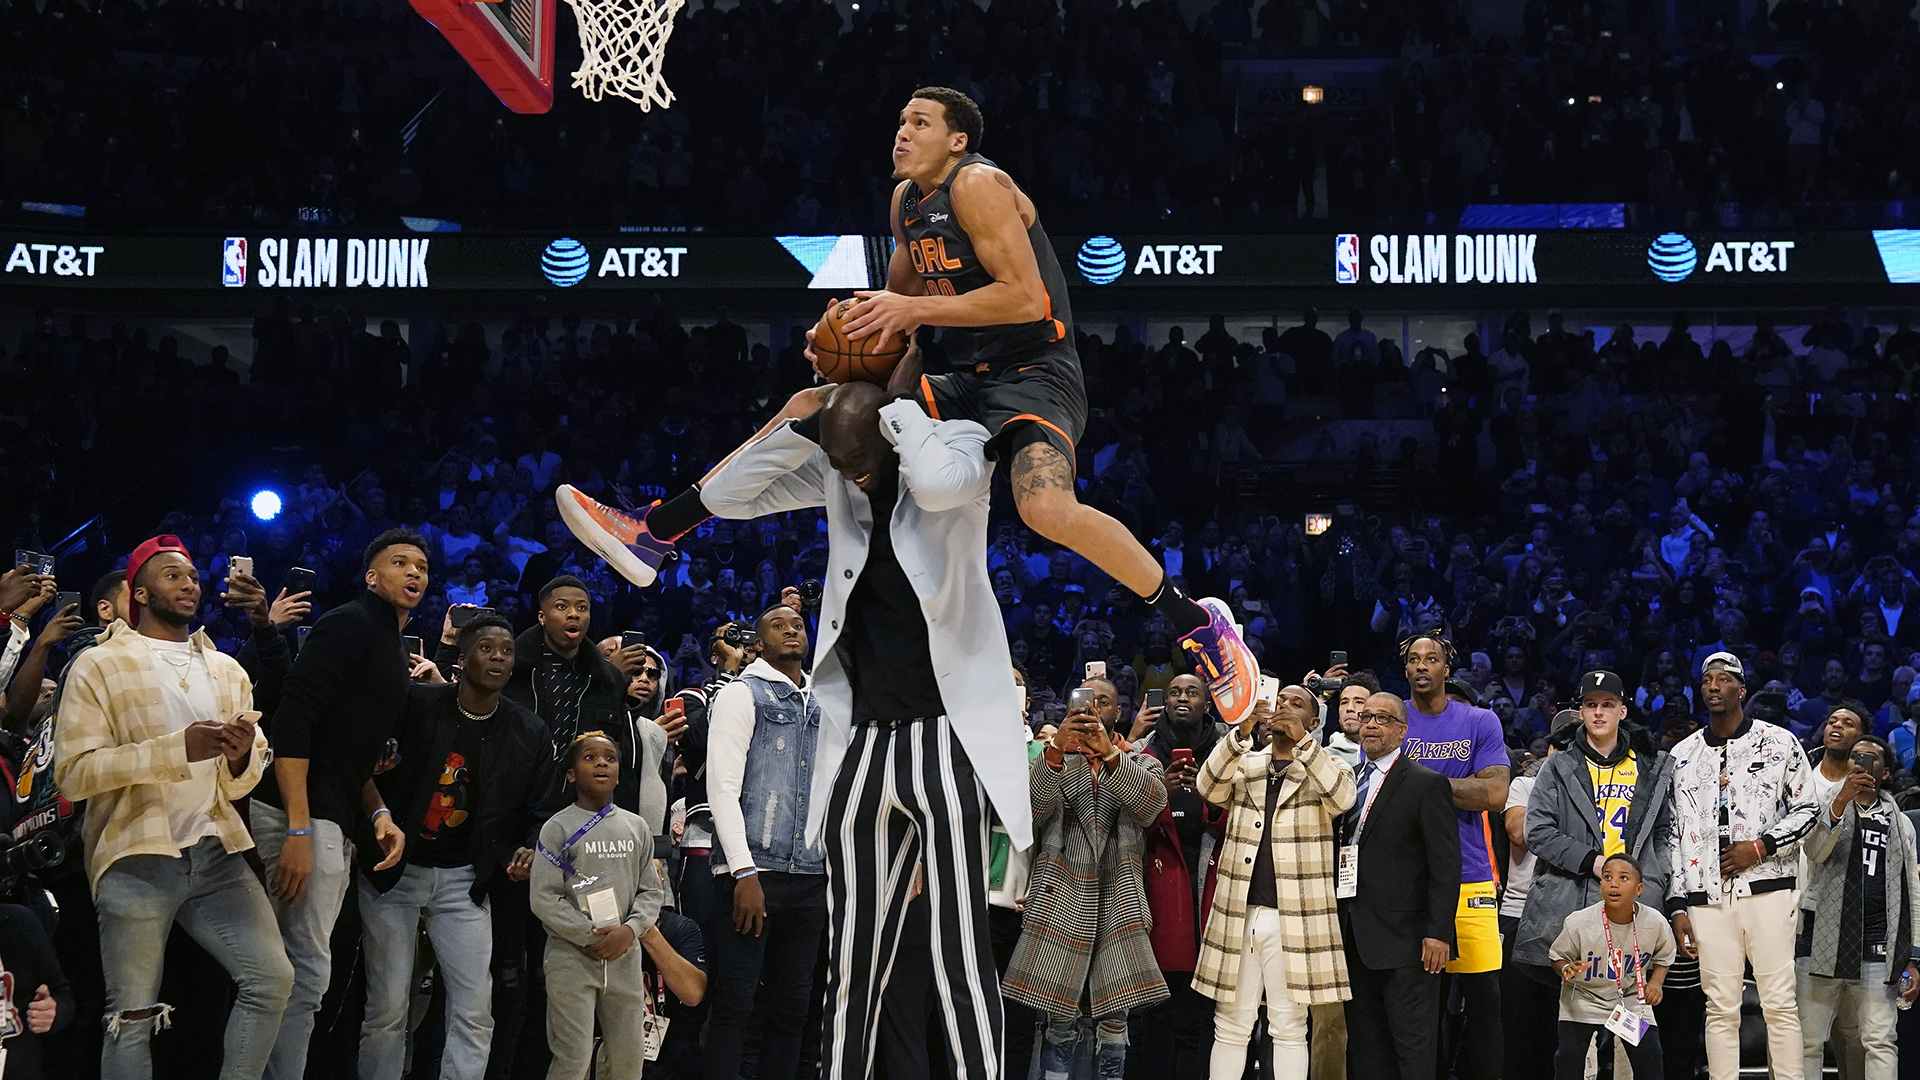 Best dunk contest jams jumping over people & props